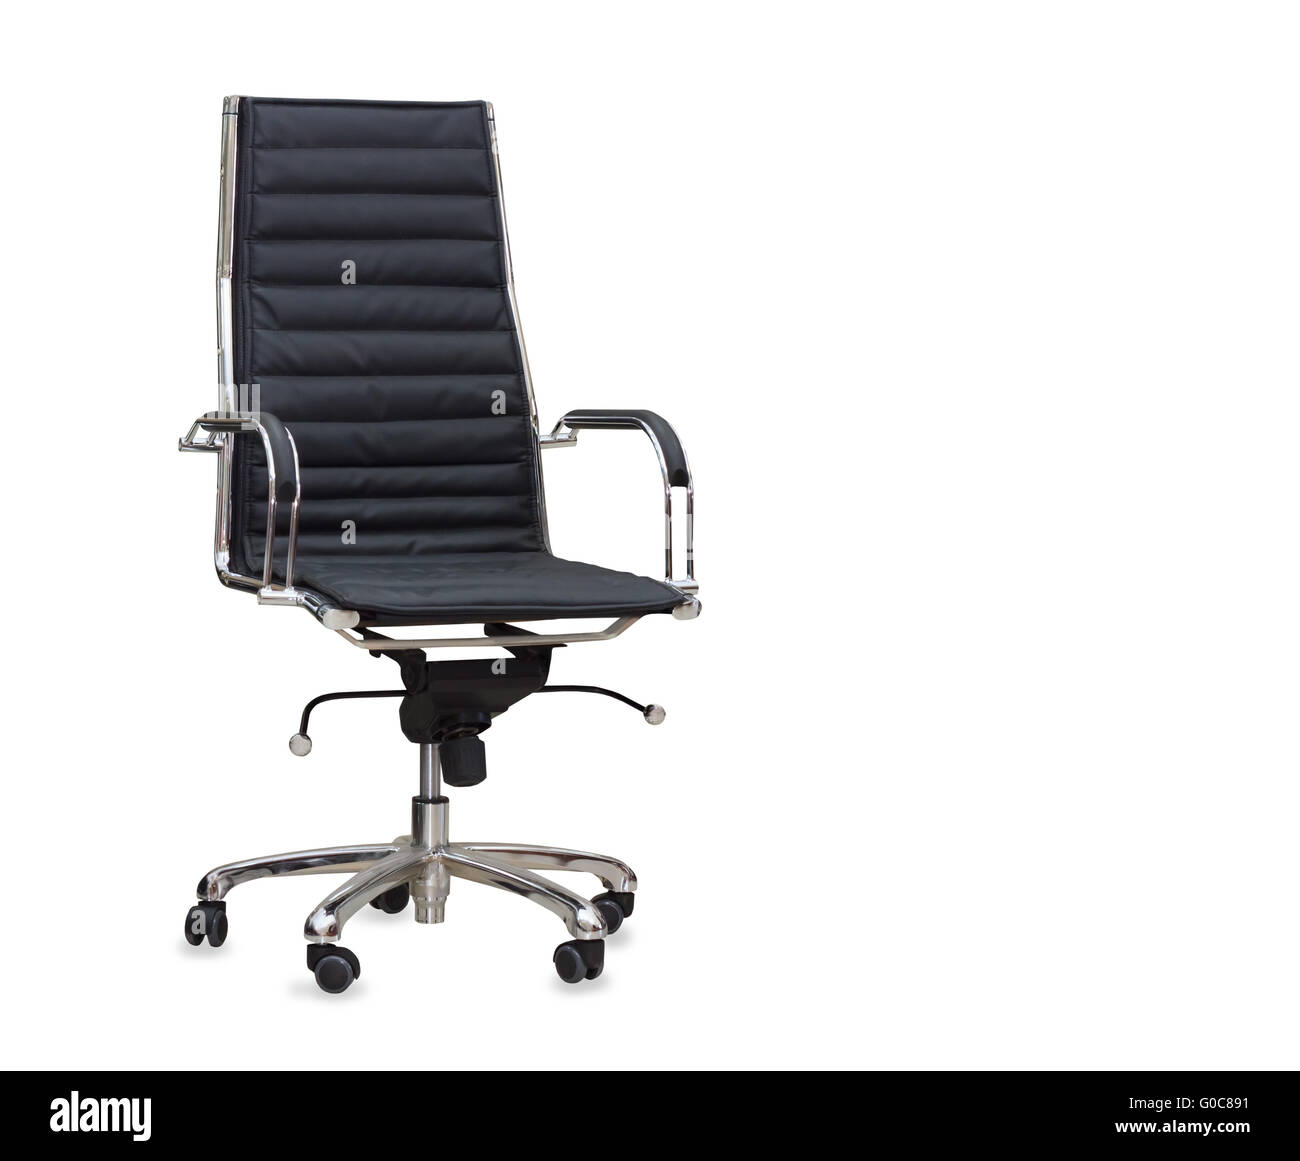 The office chair from black leather. Isolated - Stock Image